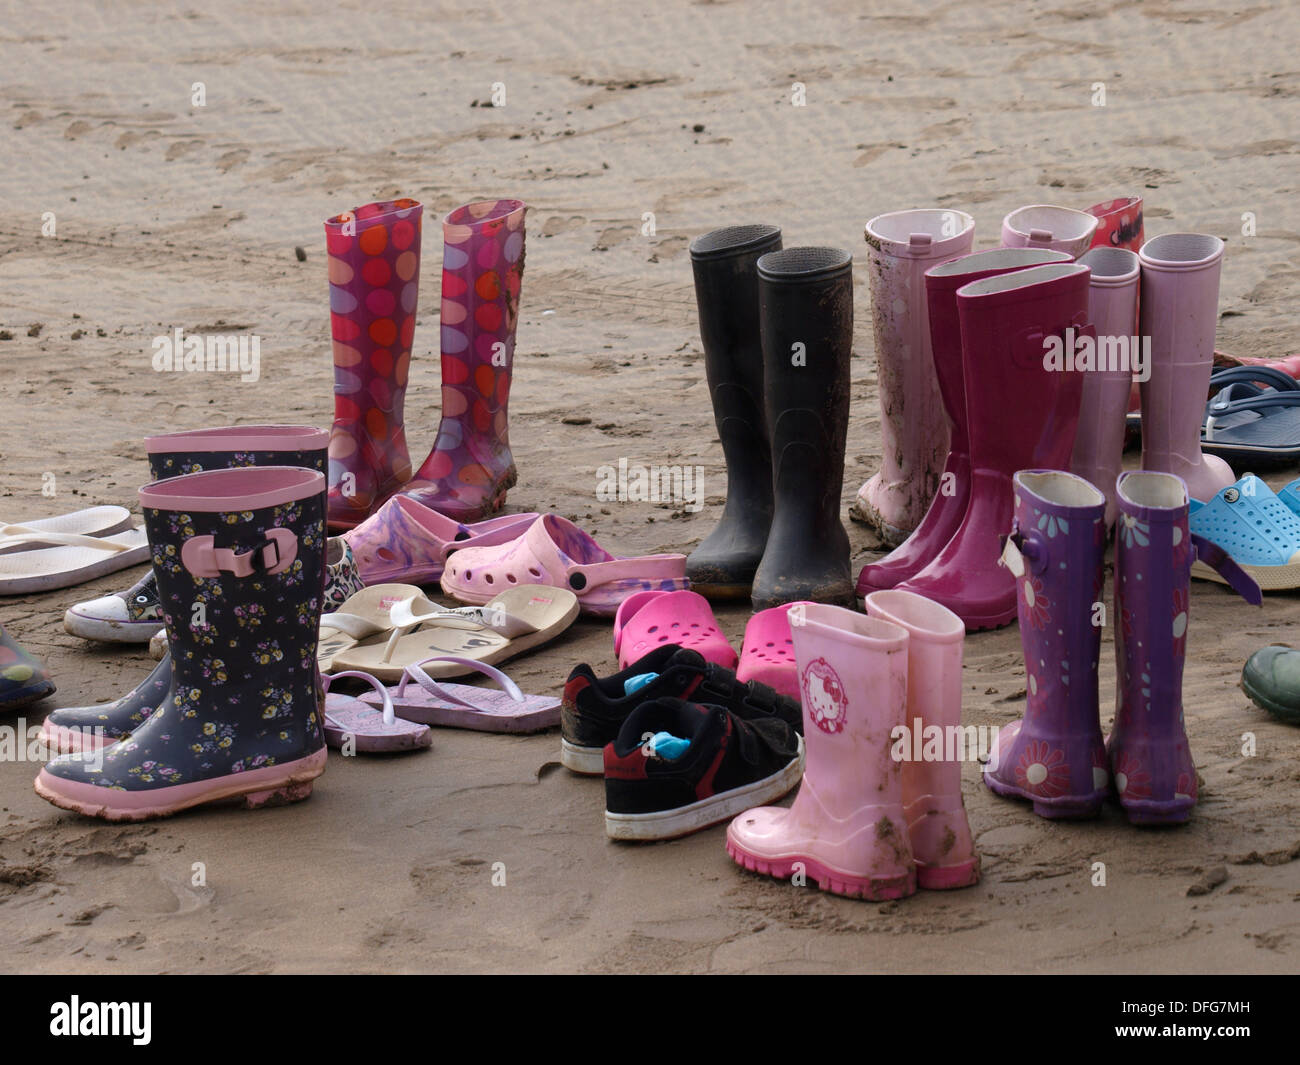 Collection of shoes and wellie boots on the beach, UK - Stock Image